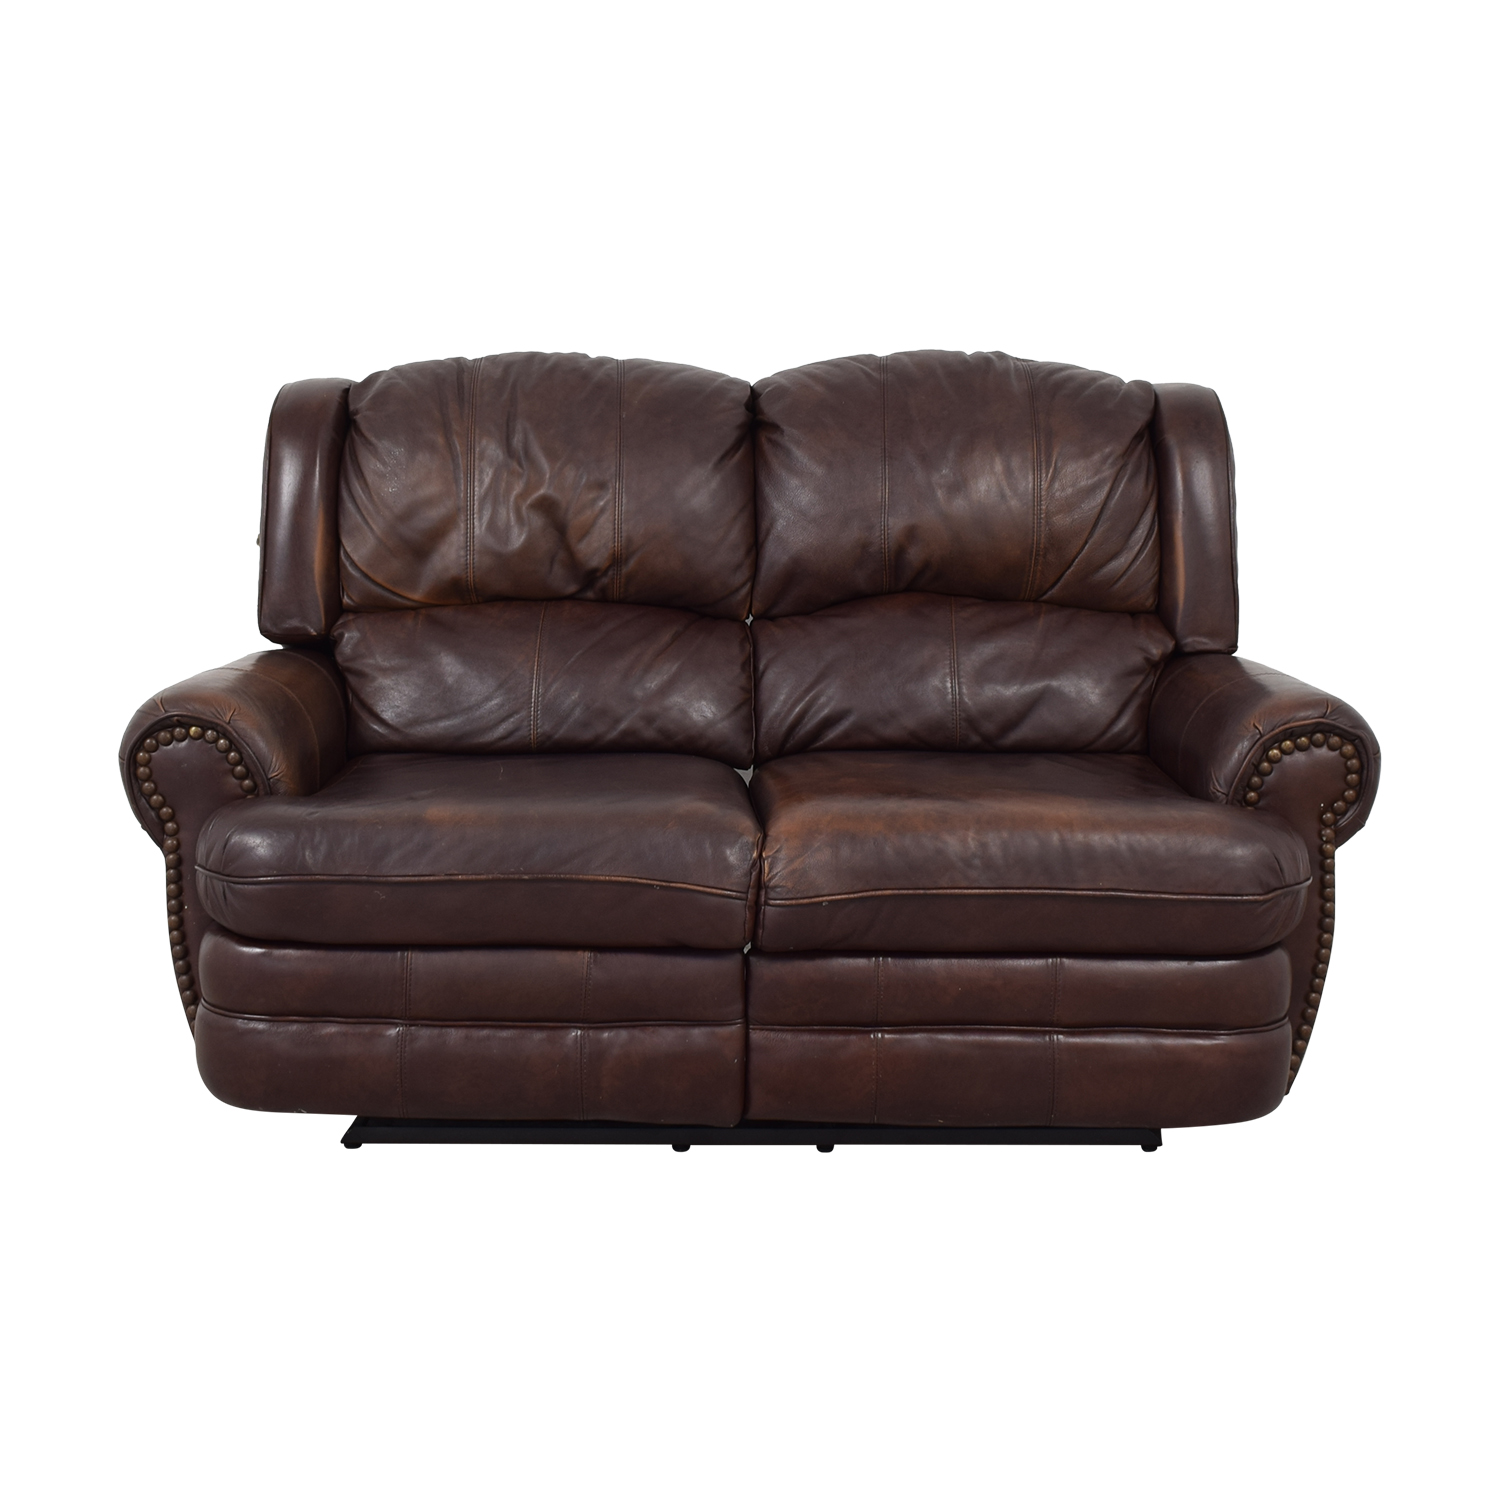 Macy's Macy's Reclining Loveseat used